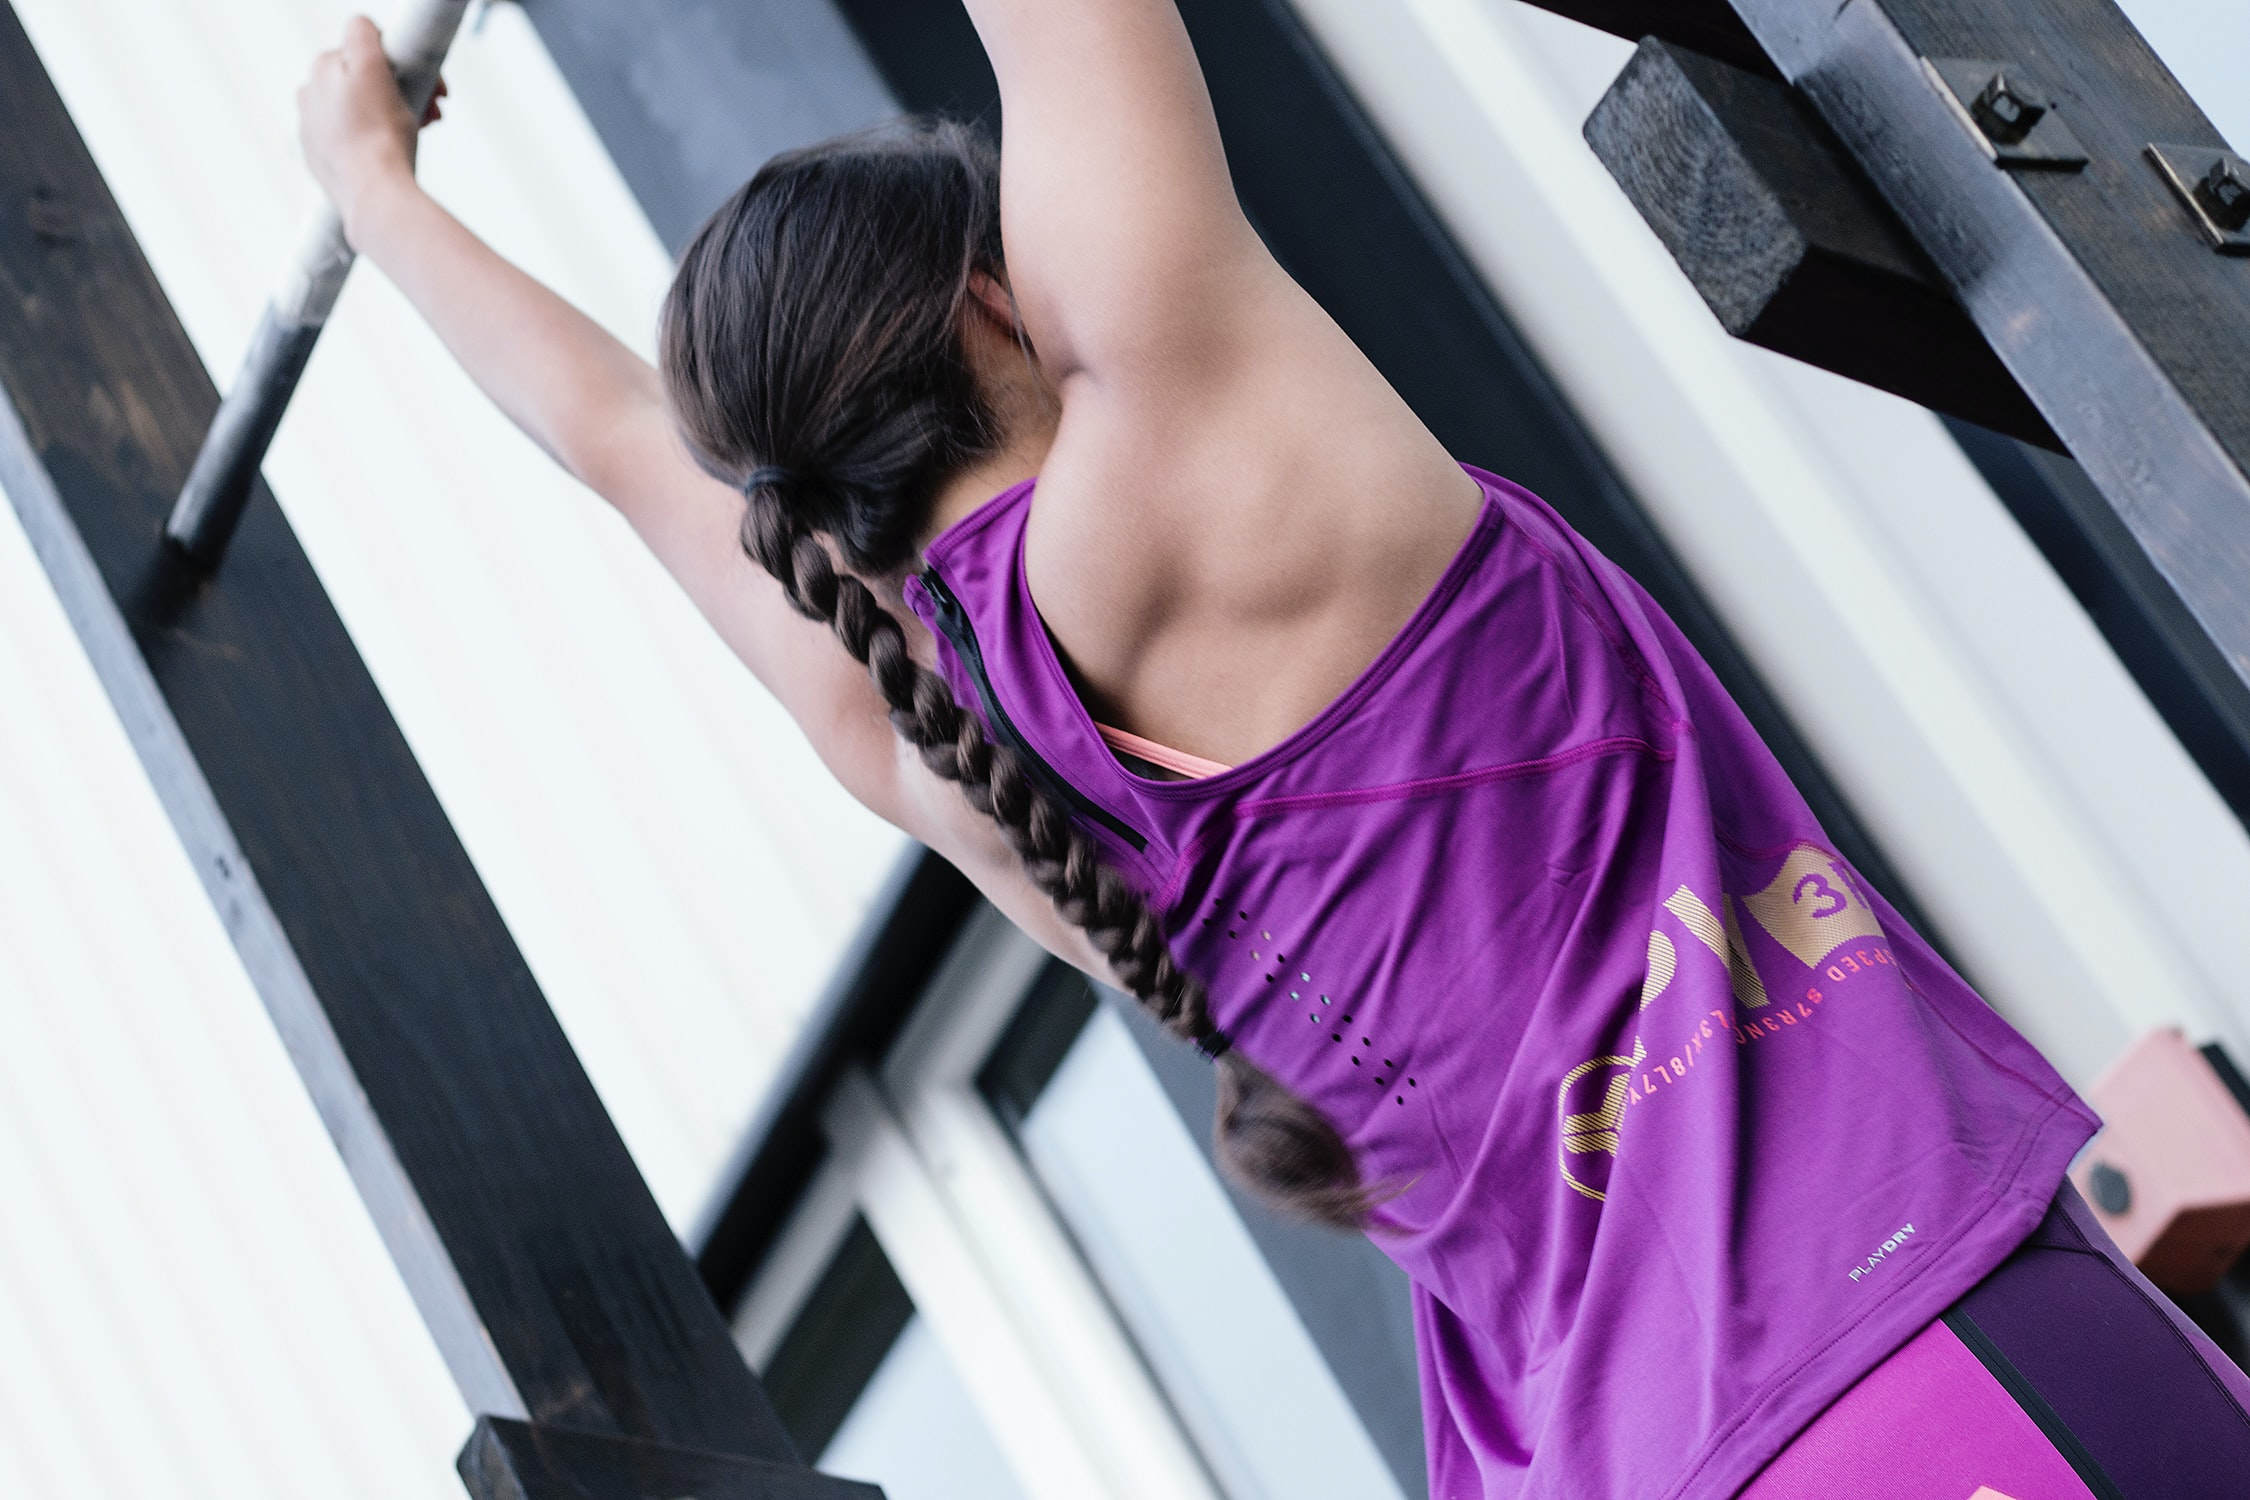 A woman with a braid in athletic clothing hangs from a metal pull-up bar